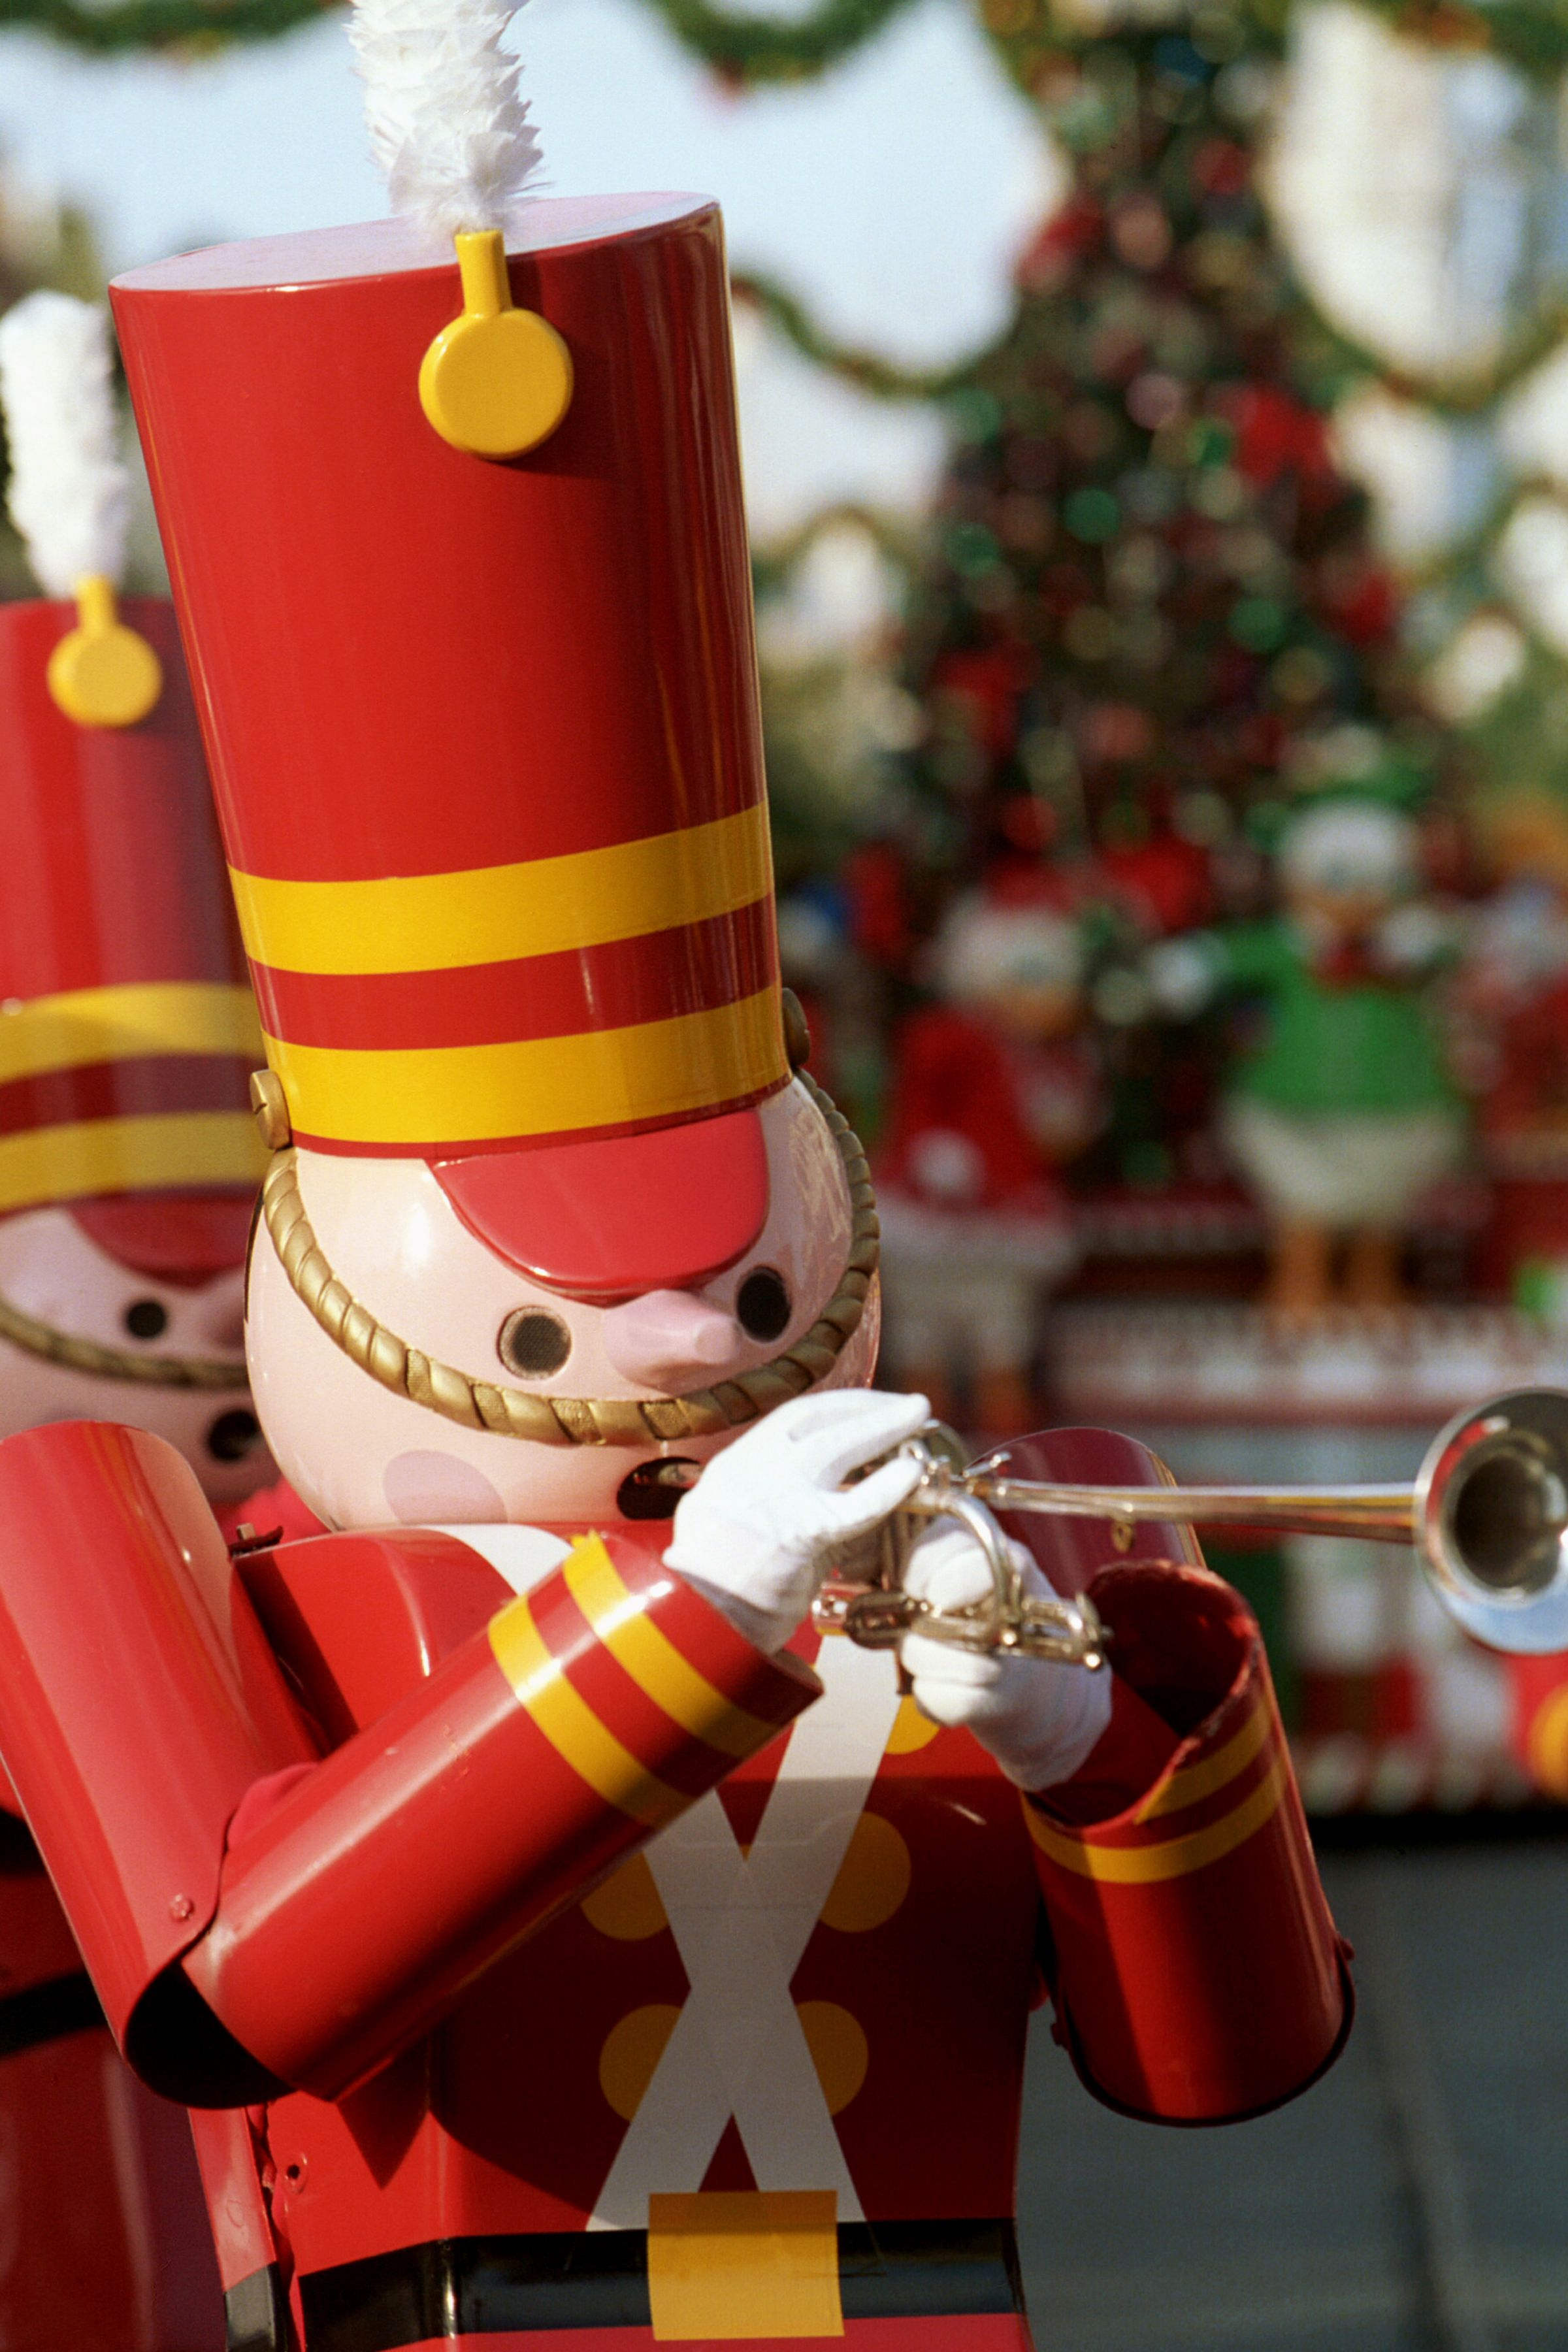 Imagine Watching A Parade Of Marching Toy Soldiers On Christmas